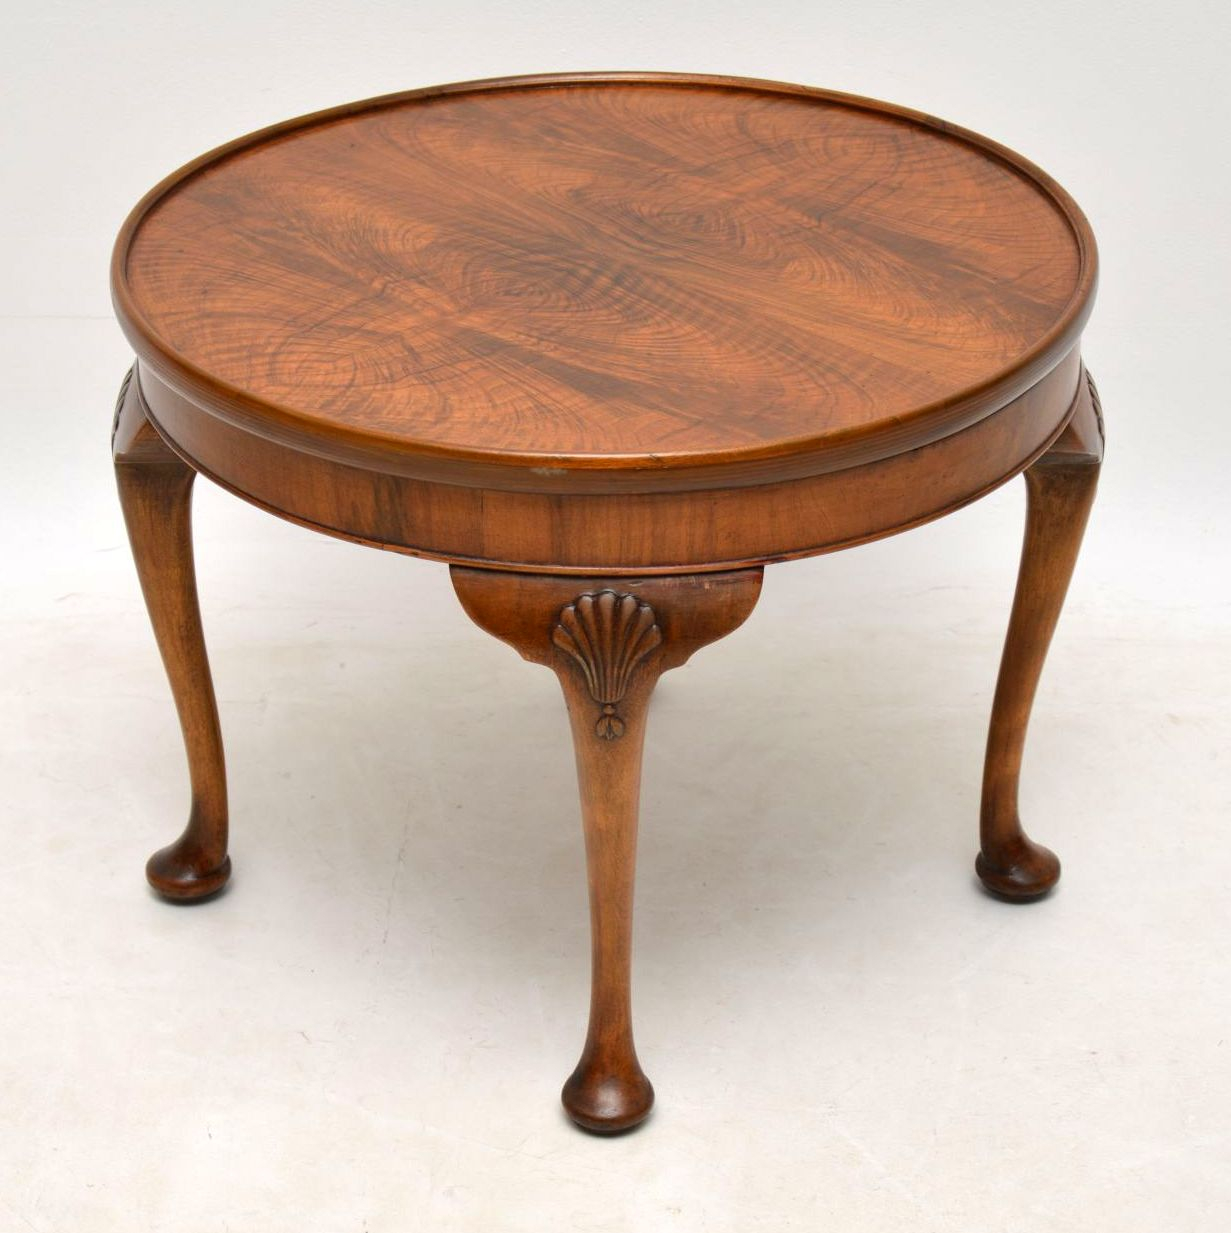 Antique Figured Walnut Coffee Table Marylebone Antiques Sellers intended for measurements 1231 X 1233